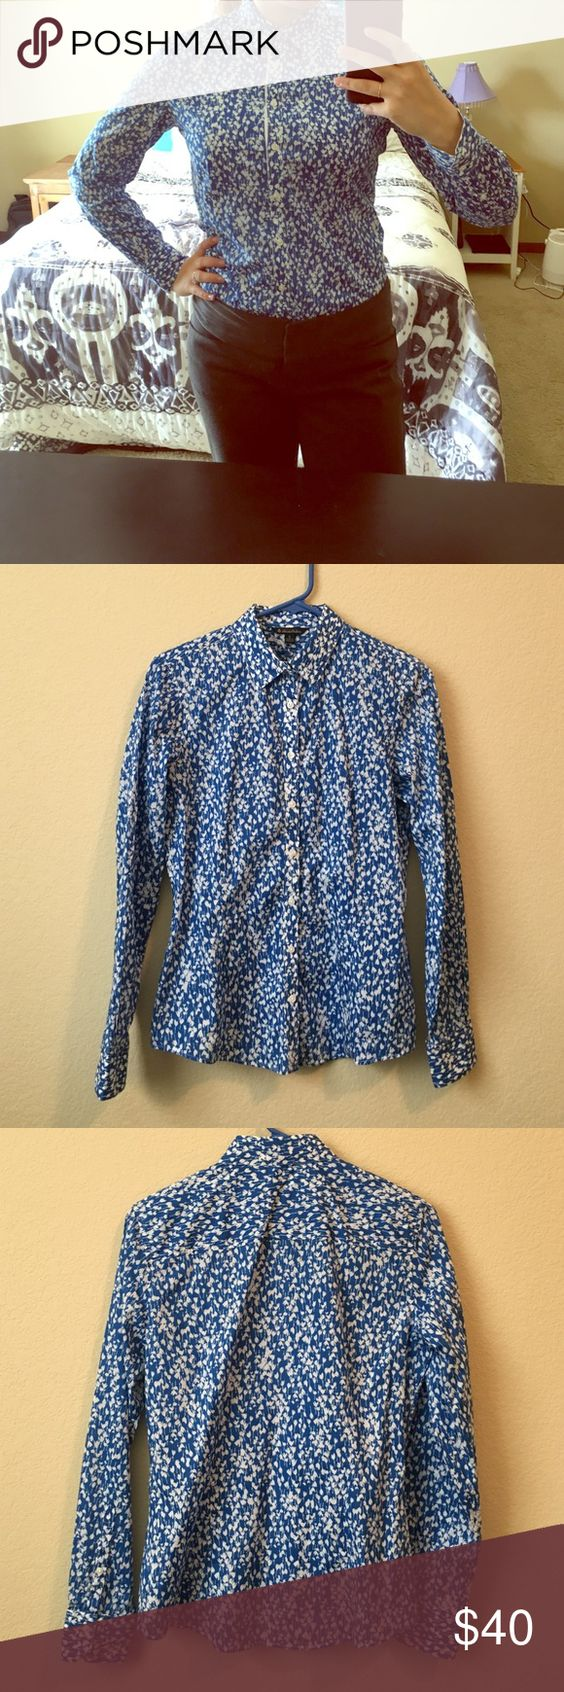 Gorgeous Brooks Brothers Blue Patterned Shirt - 6 Such a perfect button down for work or play! Brooks Brothers brand, size 6. In excellent used condition with no noticeable wear. 12oct16bdko Brooks Brothers Tops Button Down Shirts